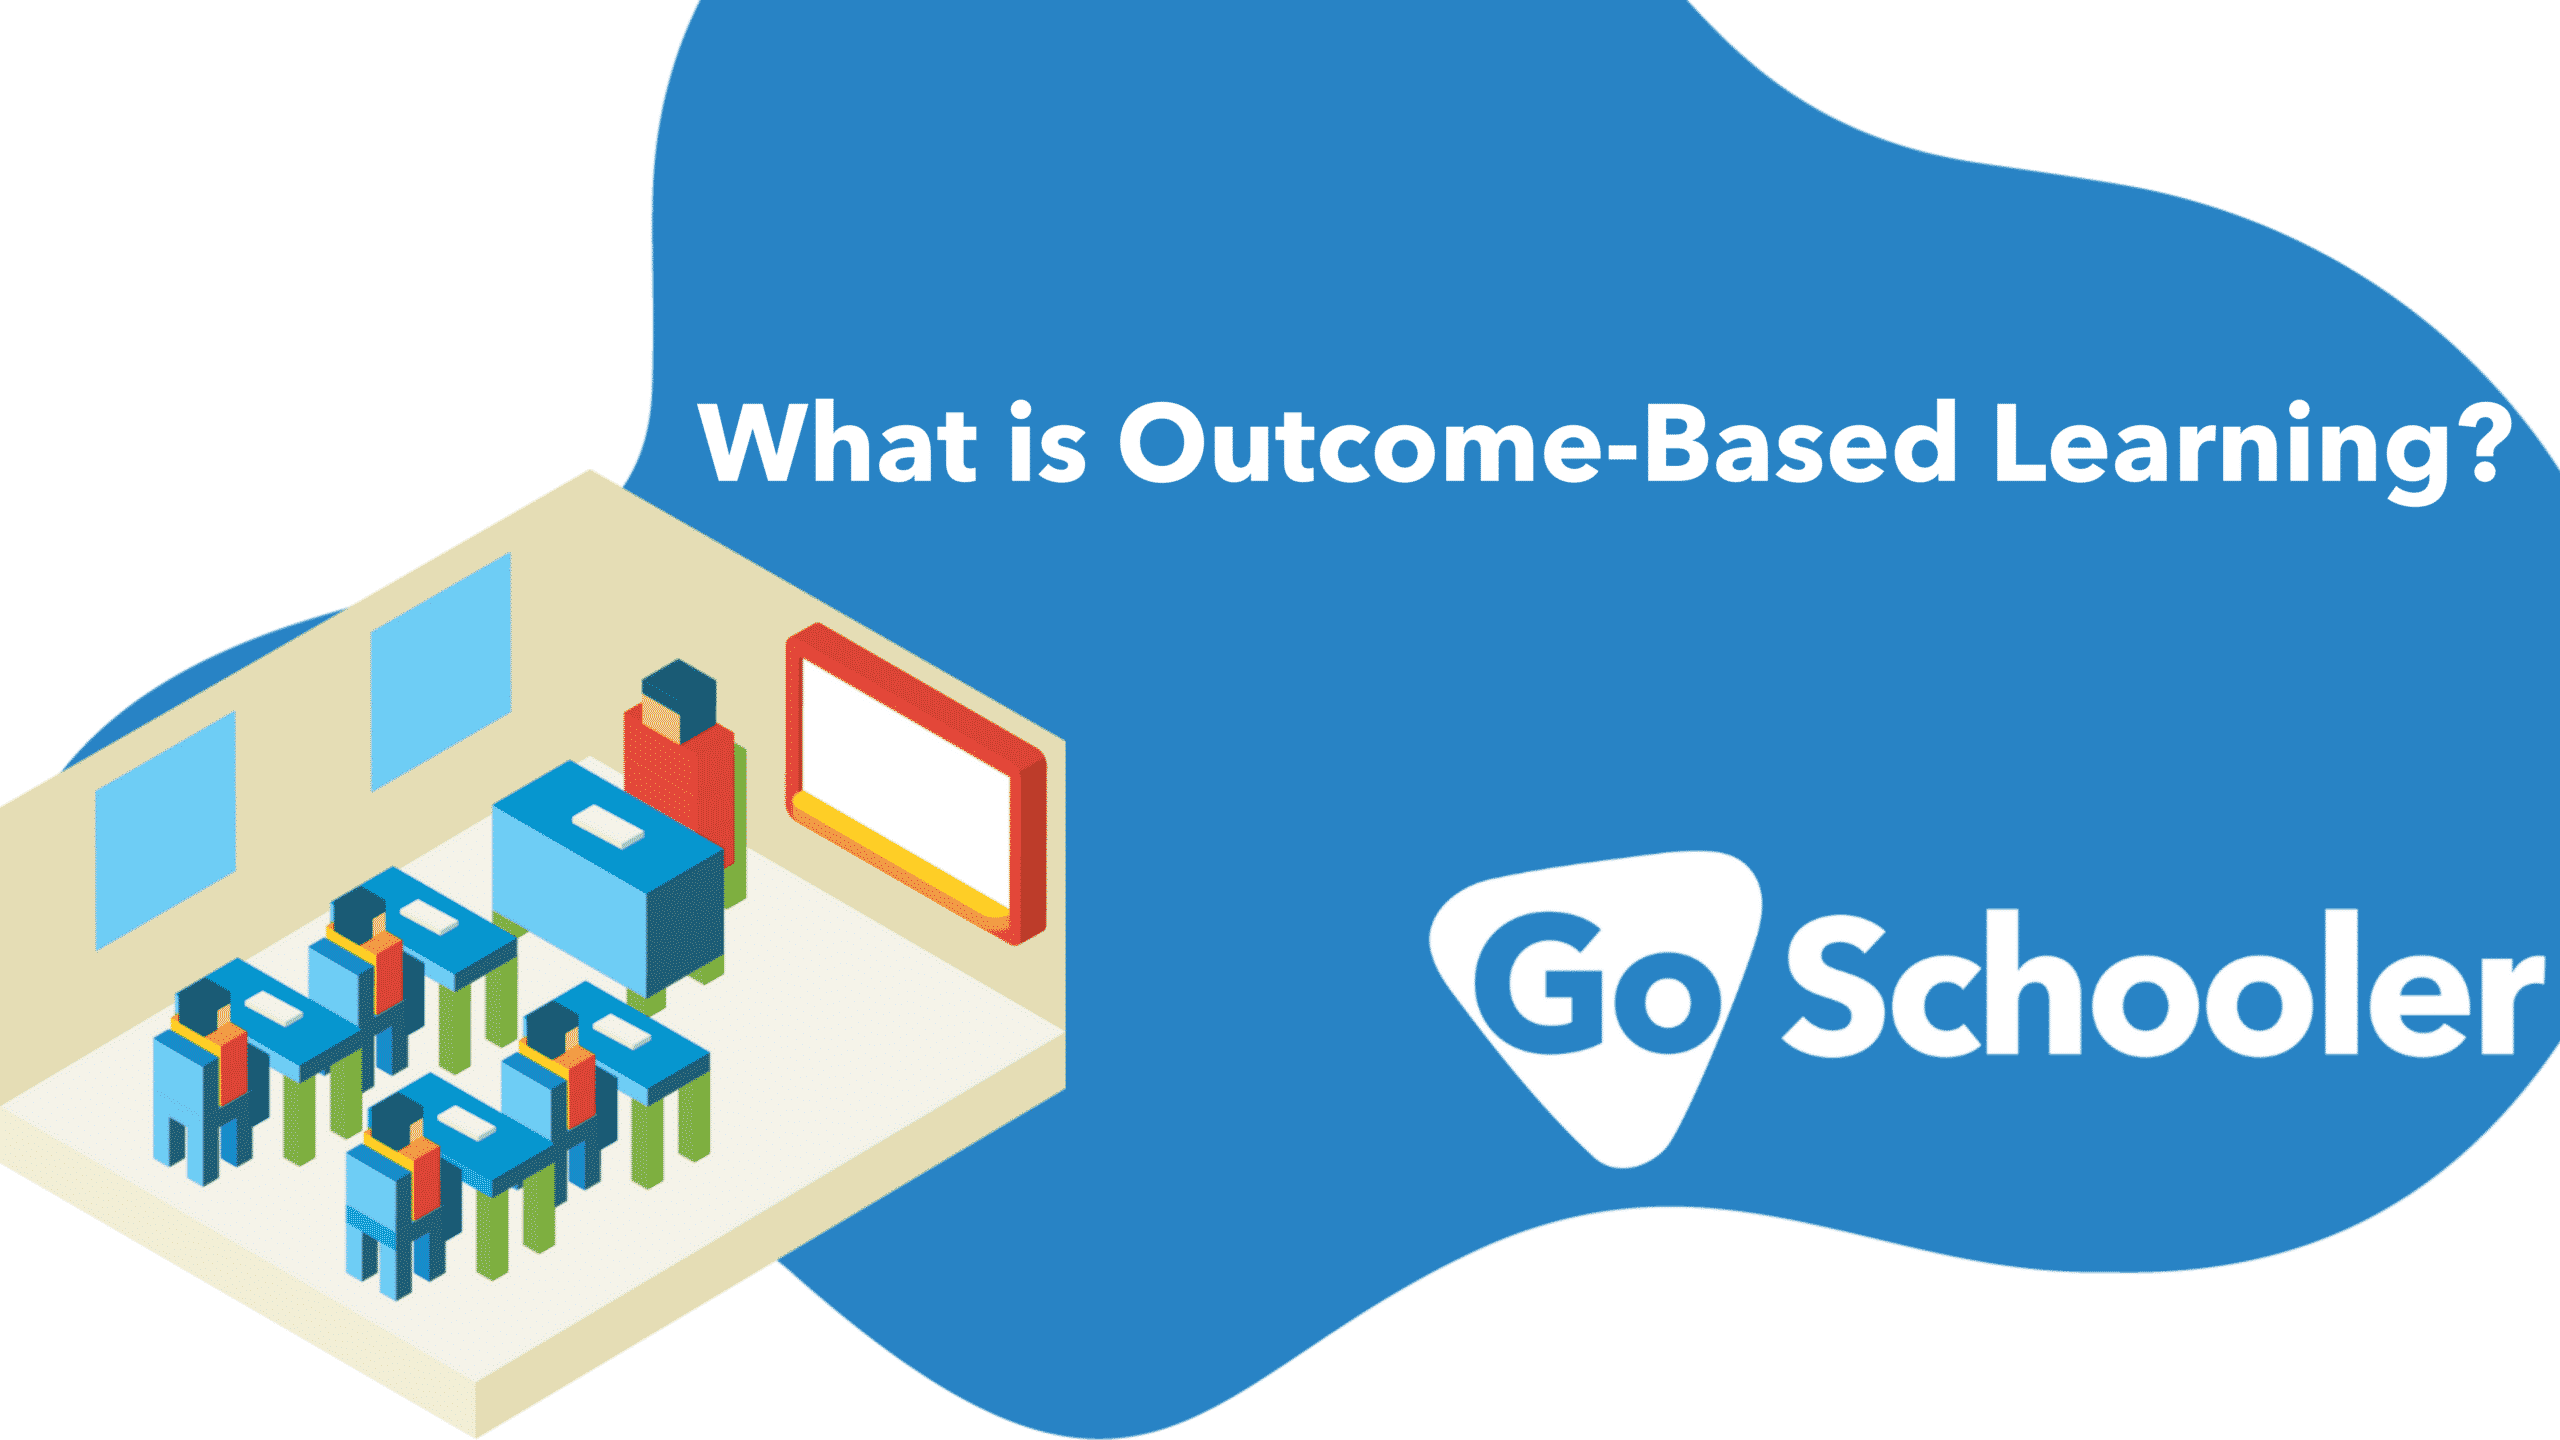 outcome-based learning